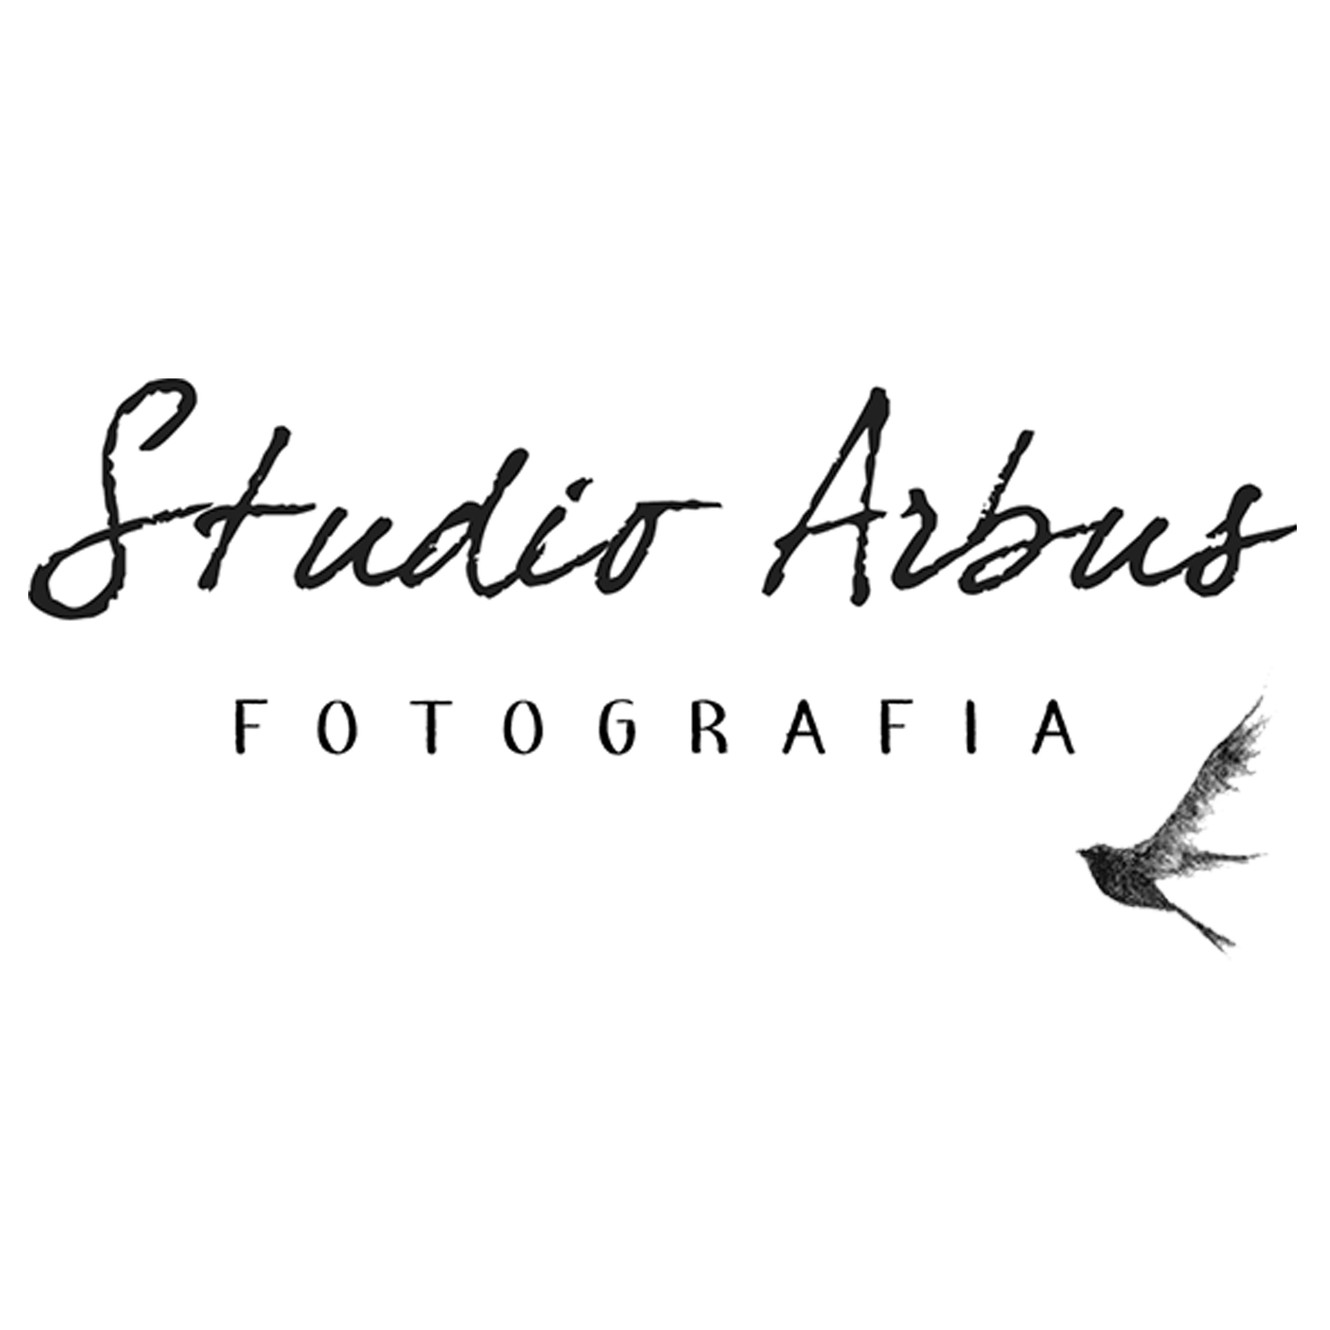 Studio Fotografico Civitanova Marche love stories | italia | studio arbus